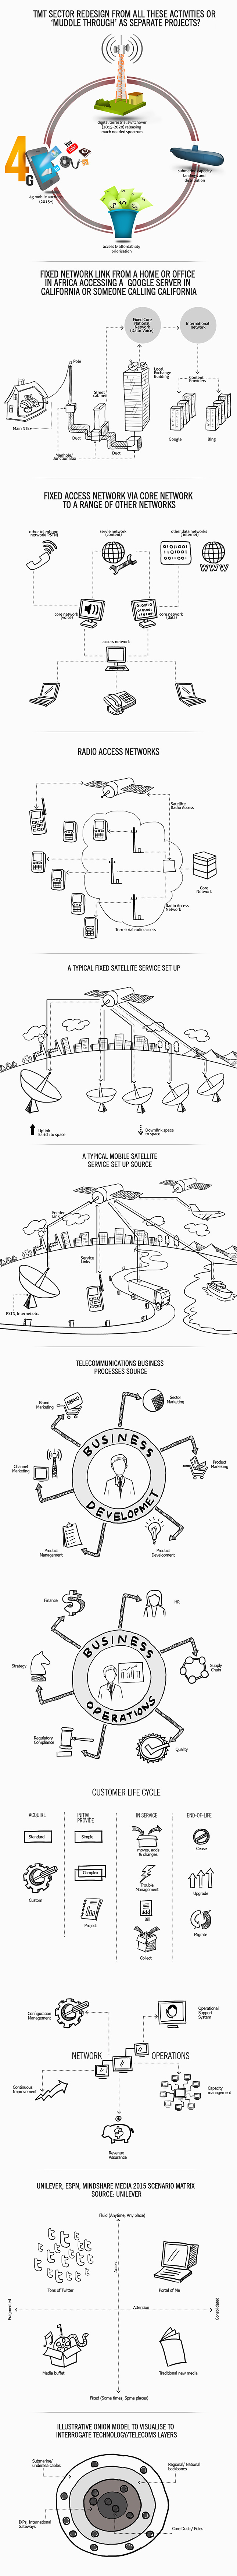 business-on-telecommunication-network_53161a3878354